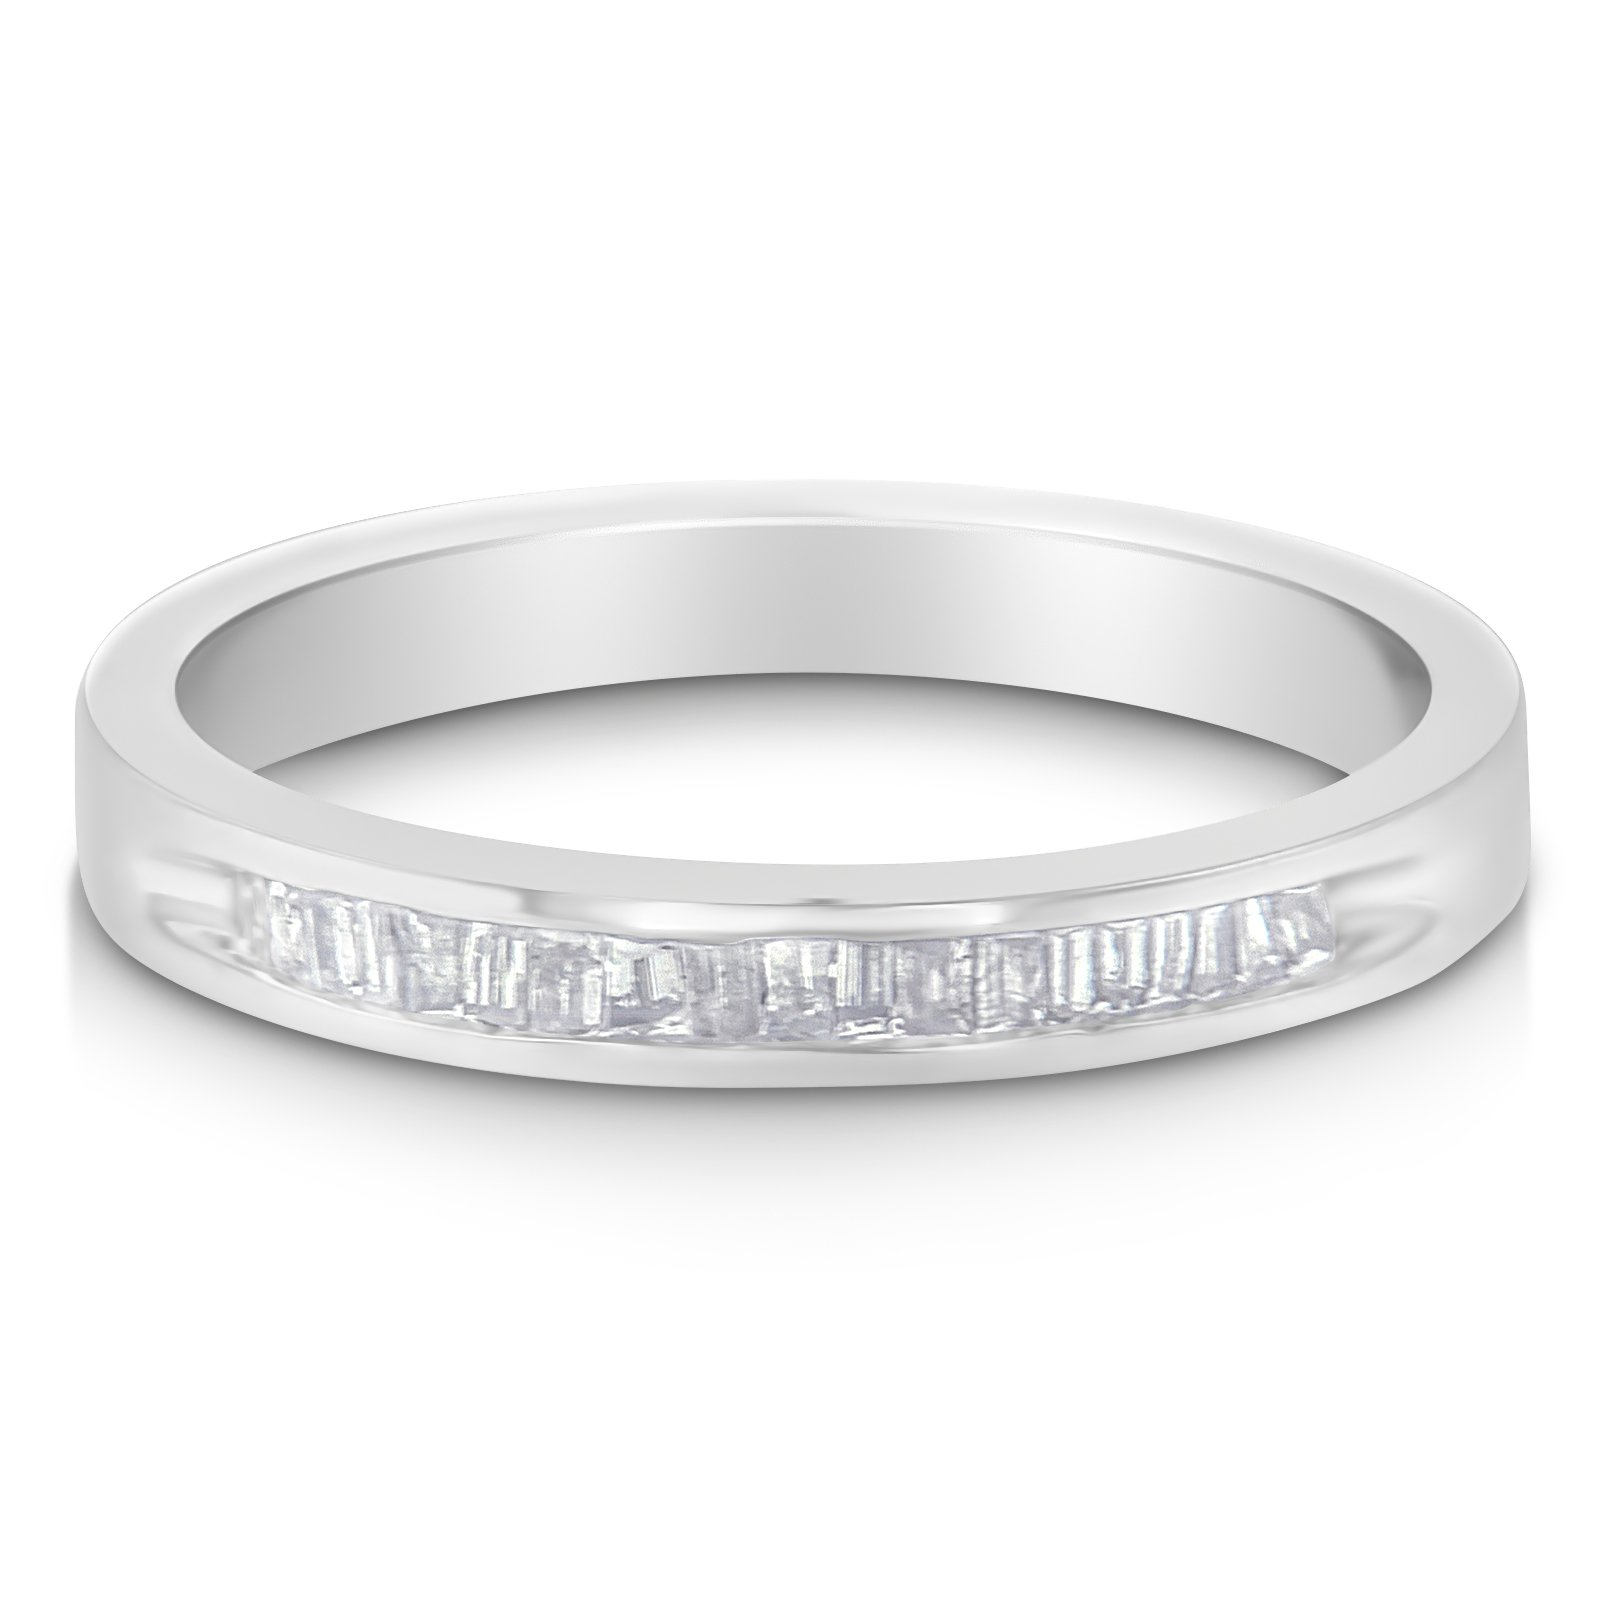 Sterling Silver Baguette-cut Diamond Band Ring - Size 7 (1/5 cttw, H-I Color, I1-I2 Clarity)